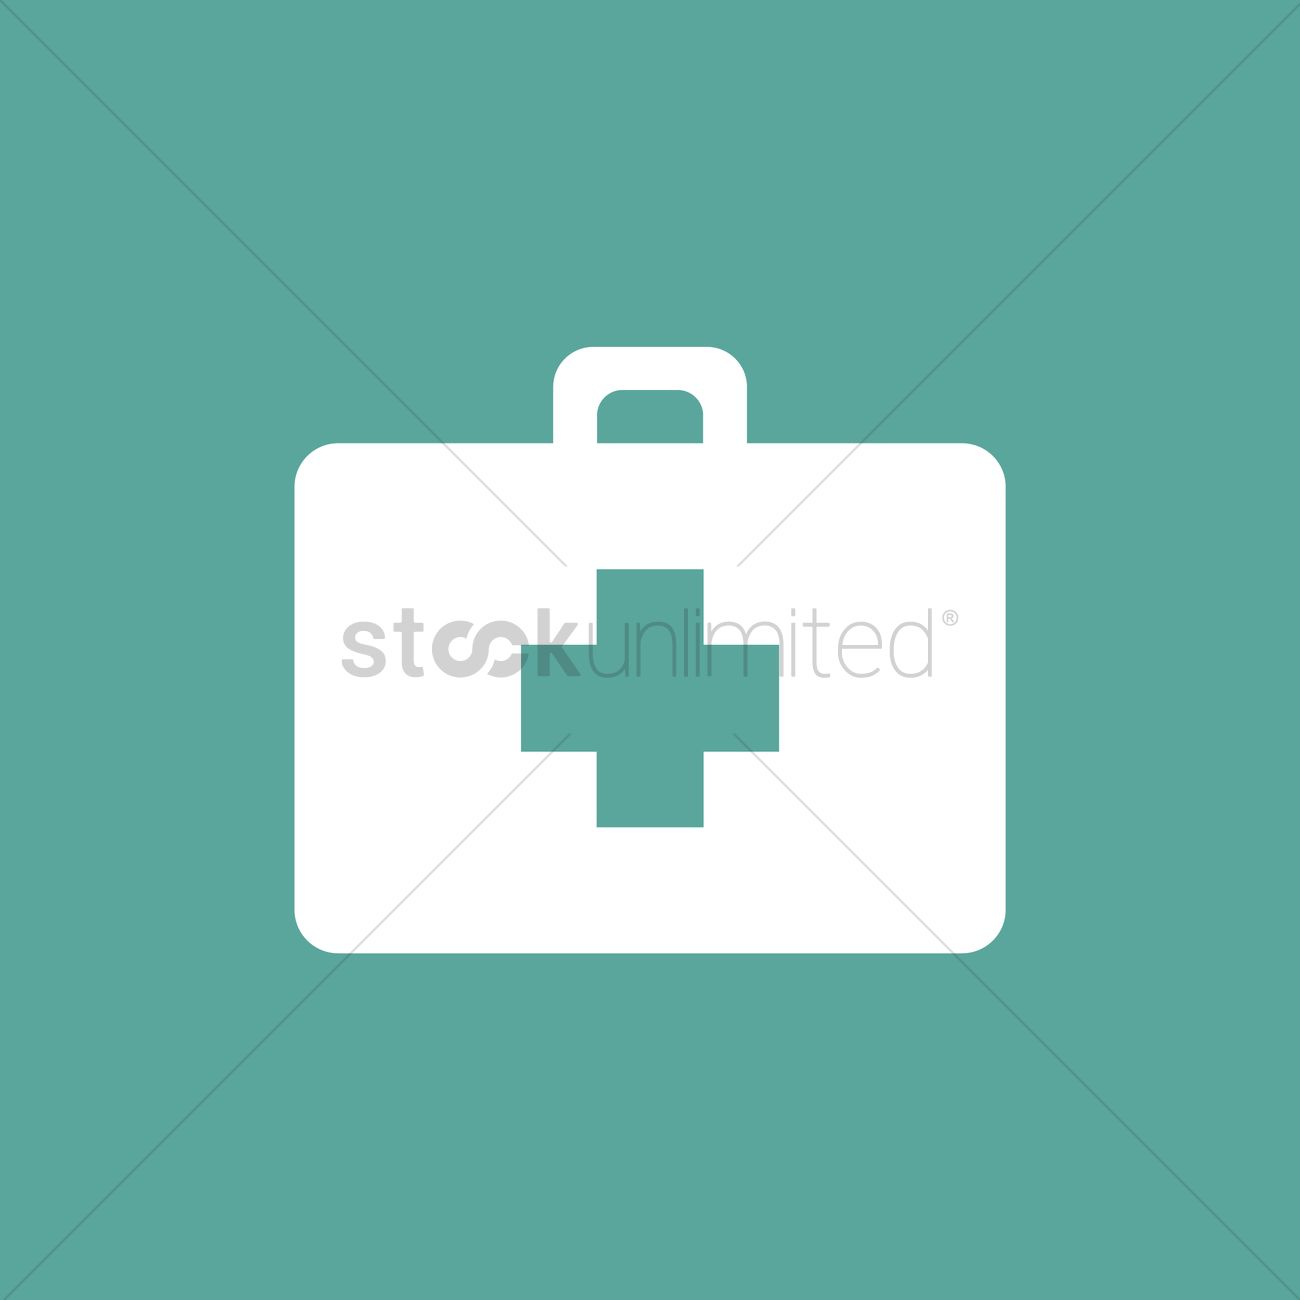 First Aid Kit Vector at GetDrawings com | Free for personal